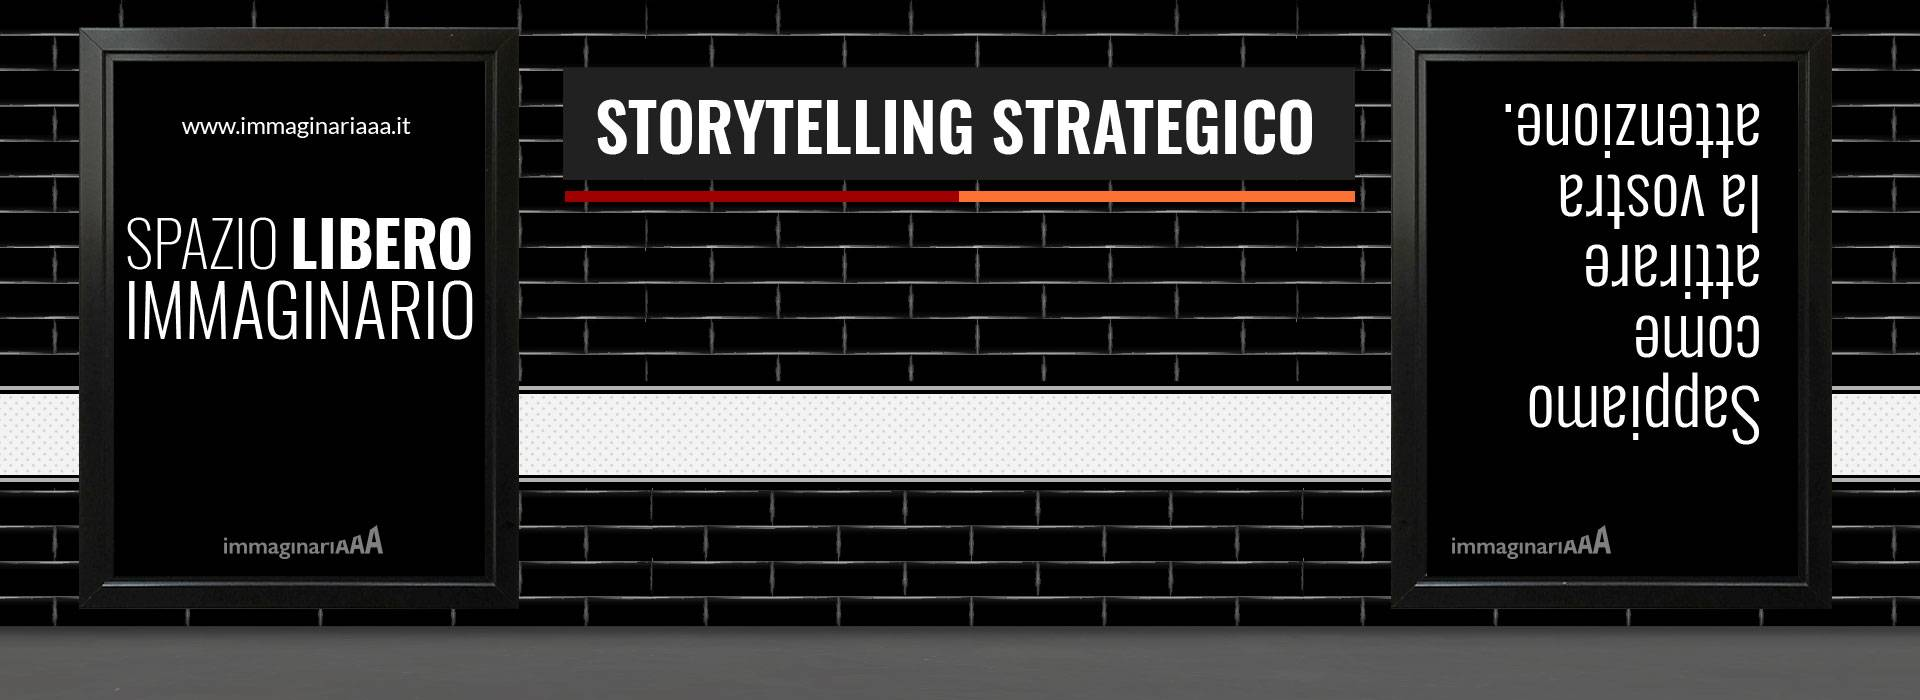 Storytelling strategico